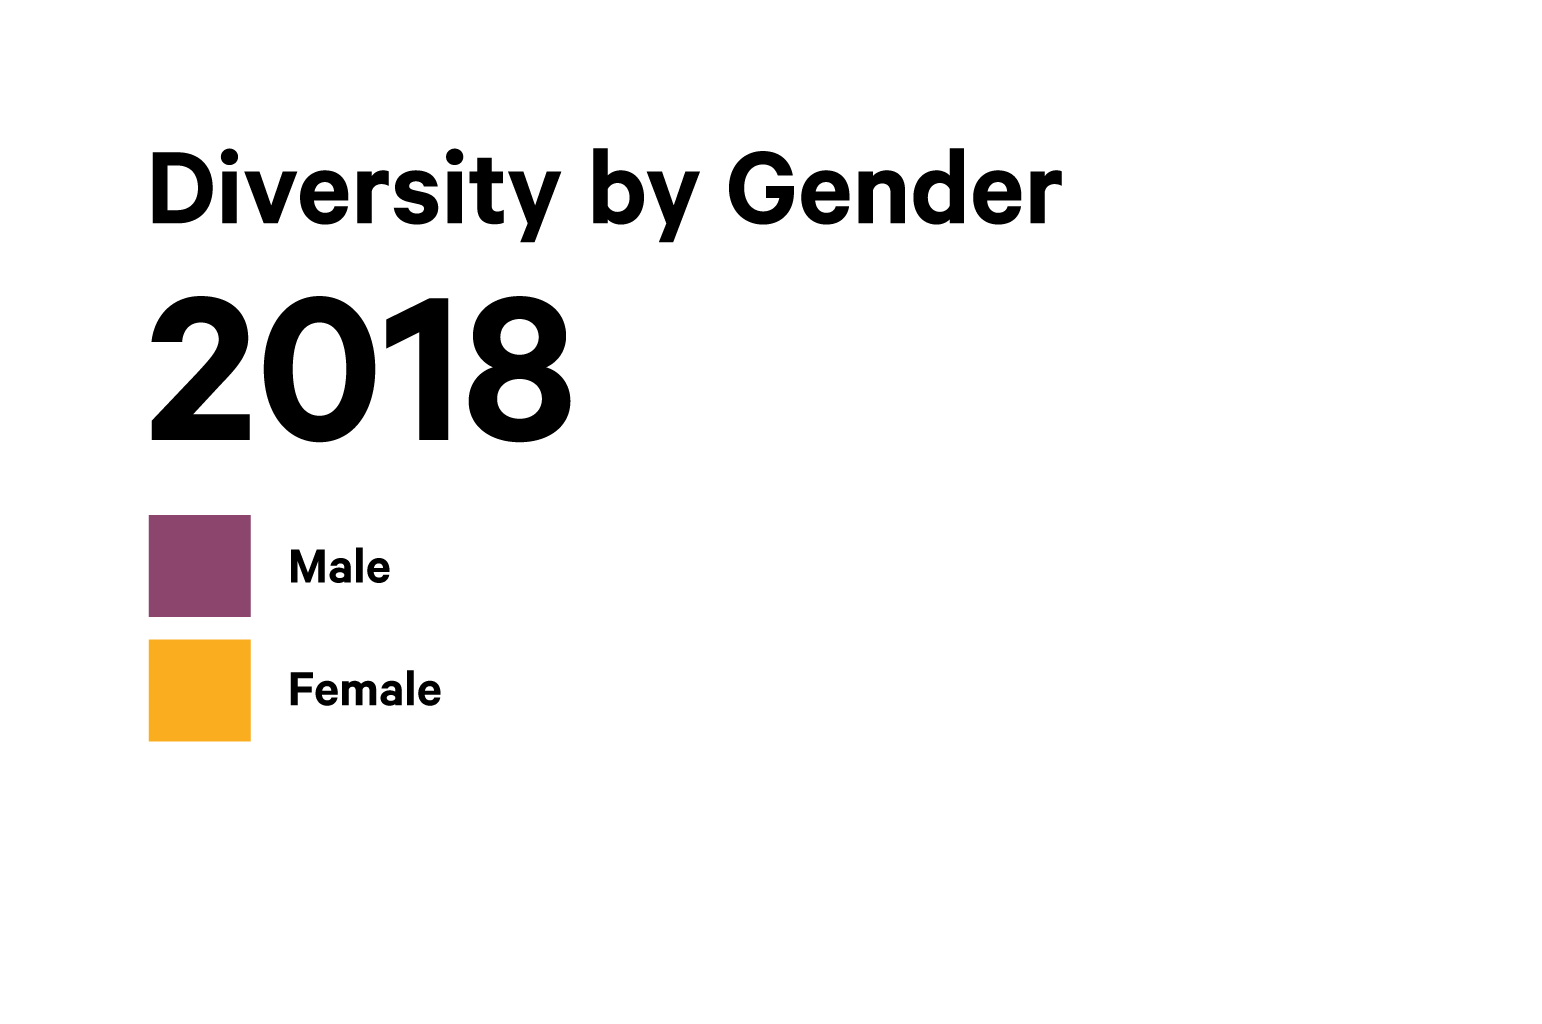 2018 Gender Diversity key png